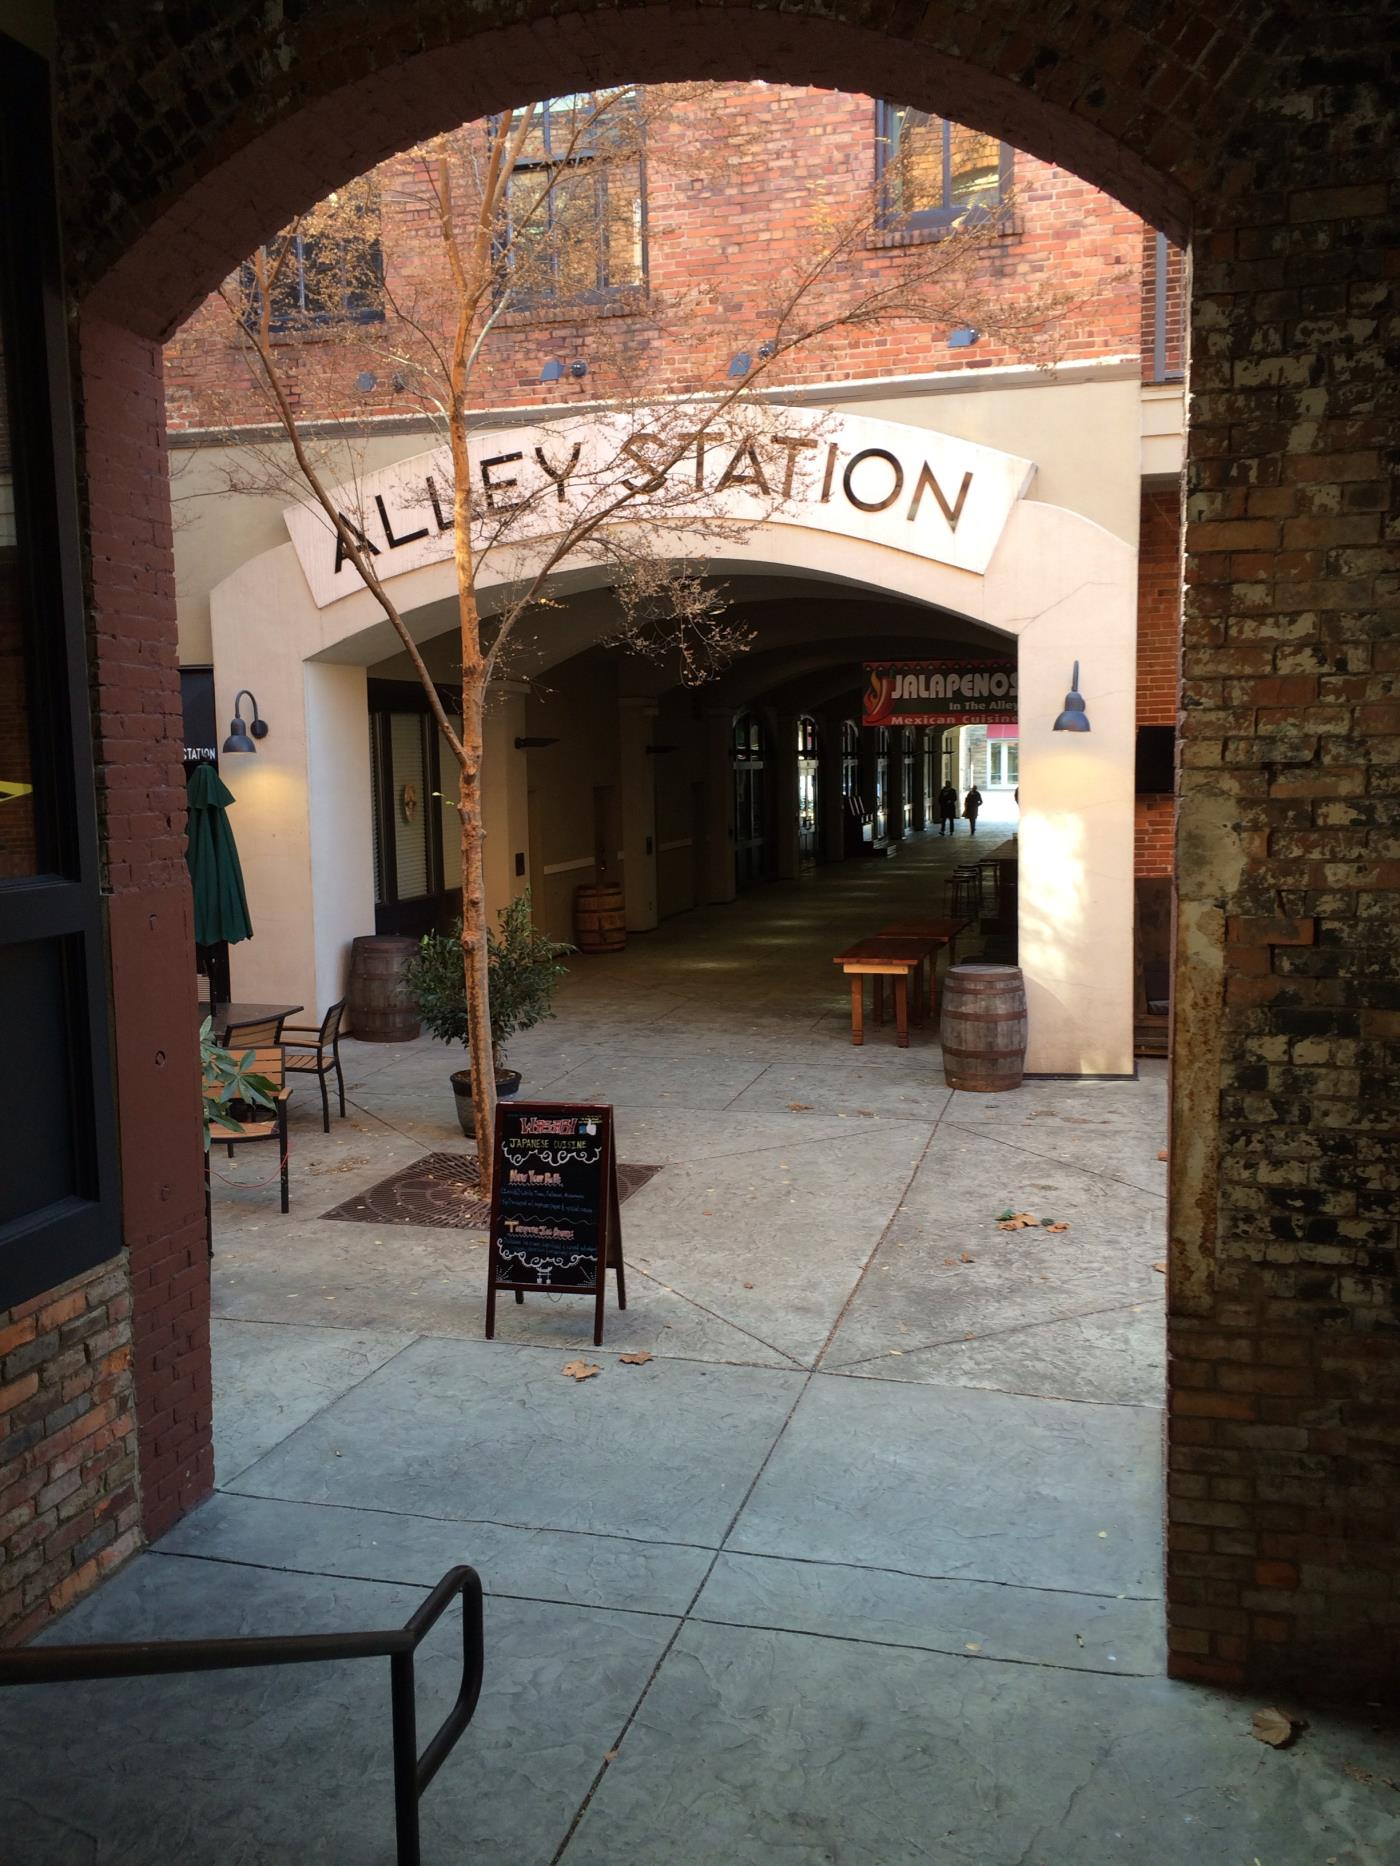 Alley Station 2